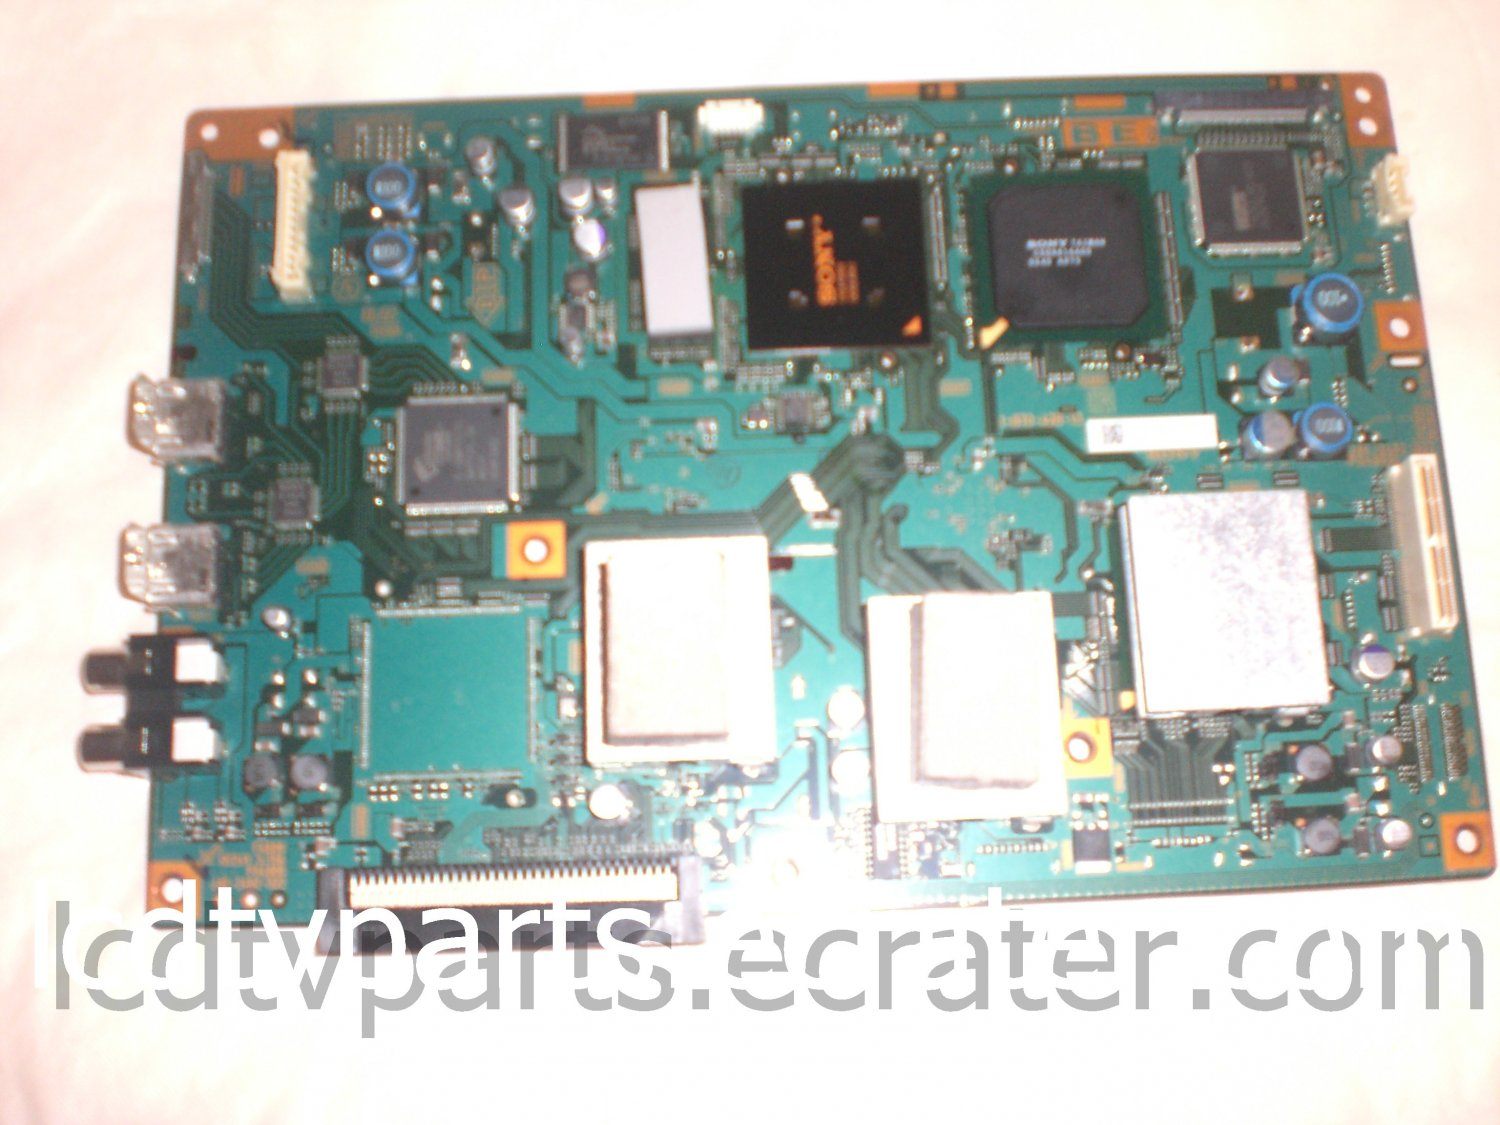 A-1212-544-A, A1212544A, 1-870-428-13, JAE2402-322,BE2 Board For SONY KDL-46XBR2